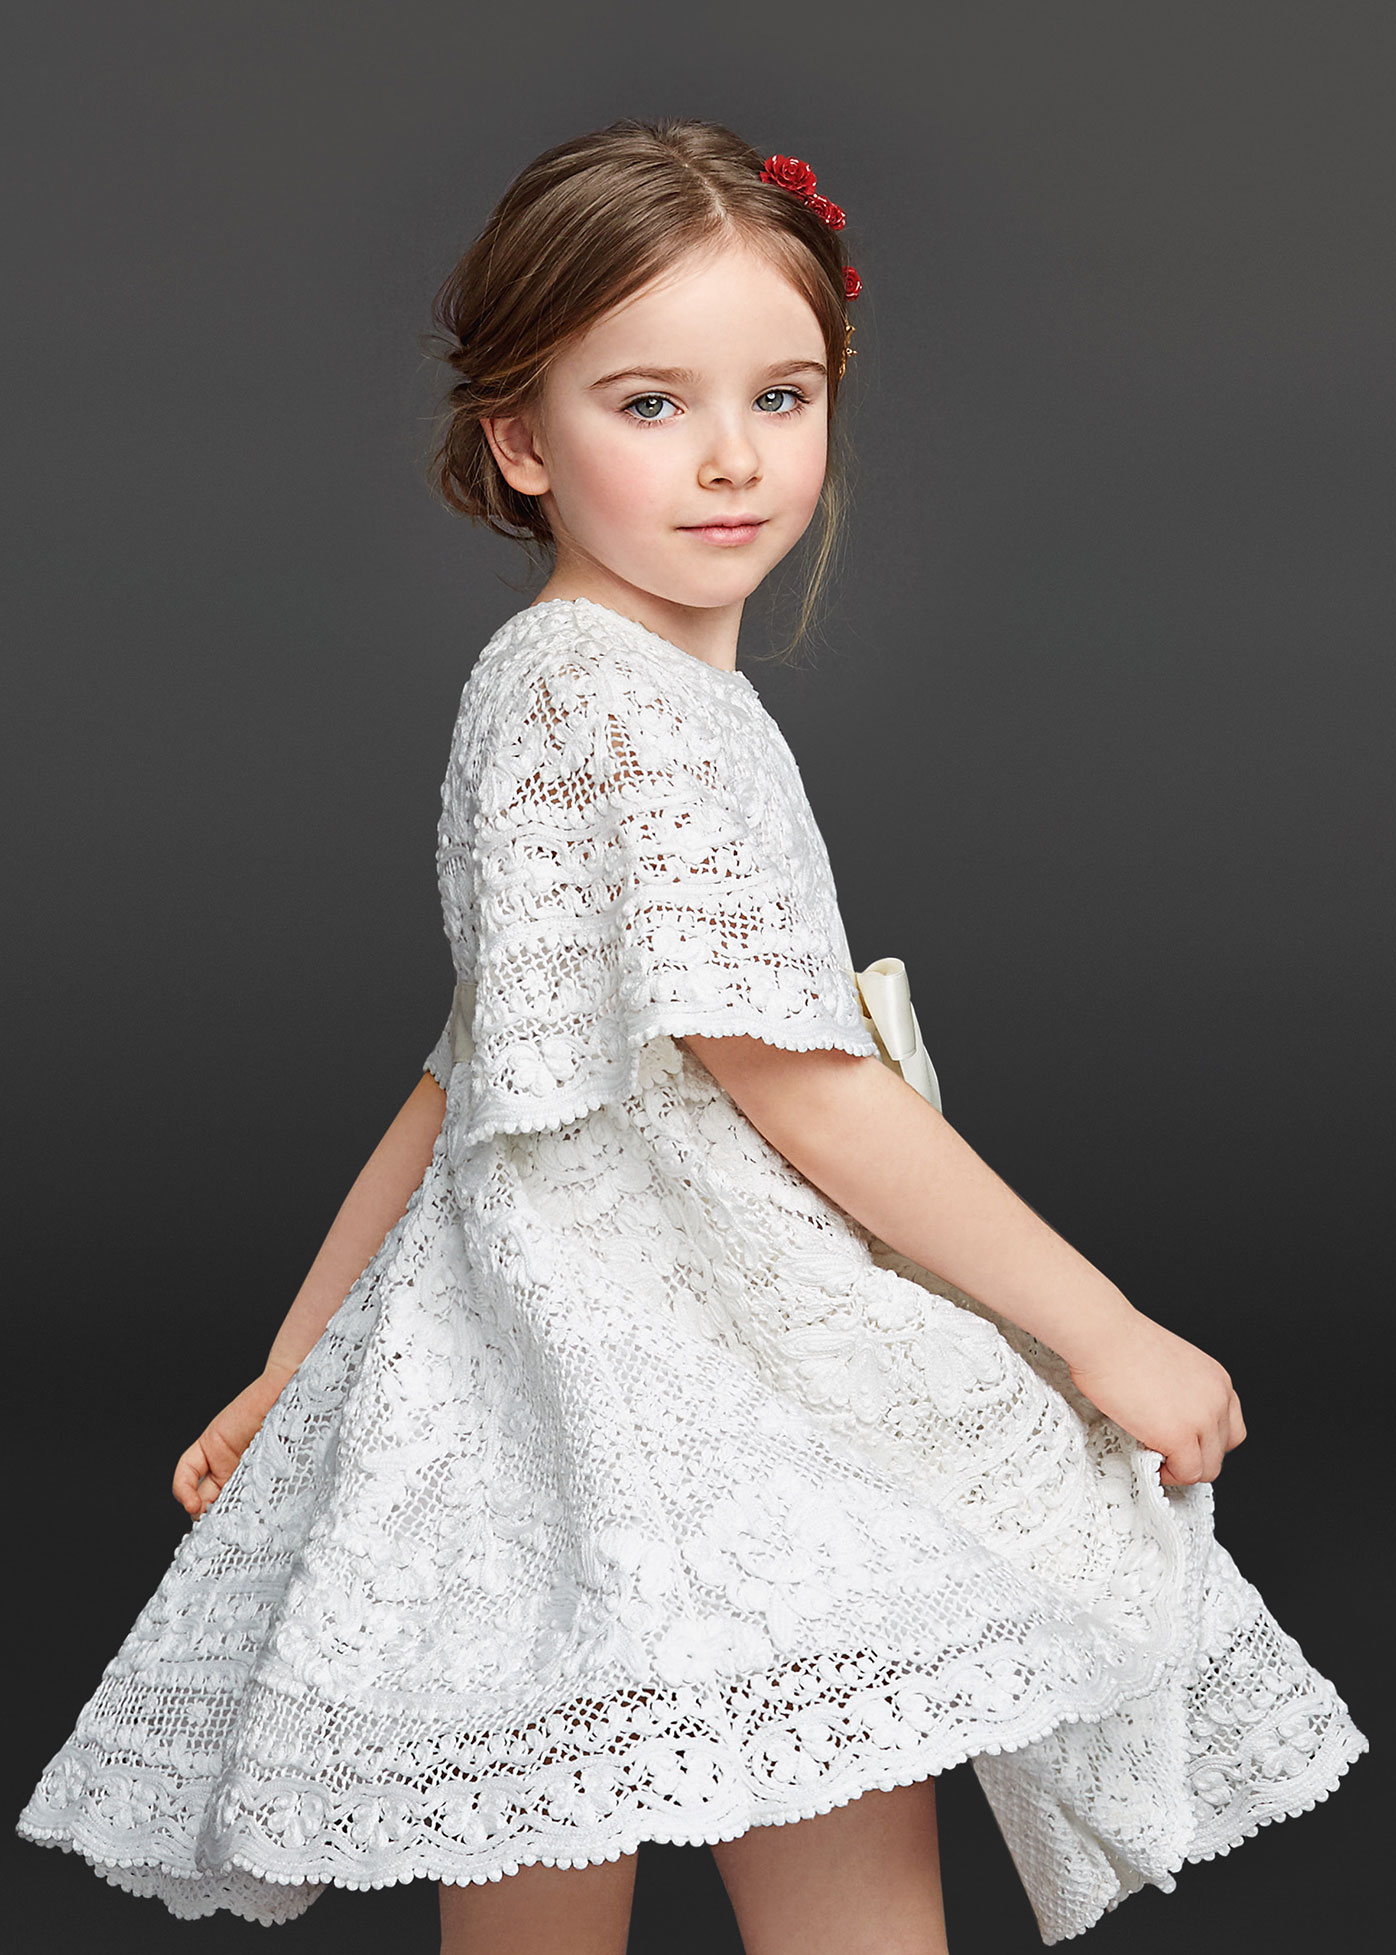 dolce-and-gabbana-winter-2016-child-collection-62-zoom